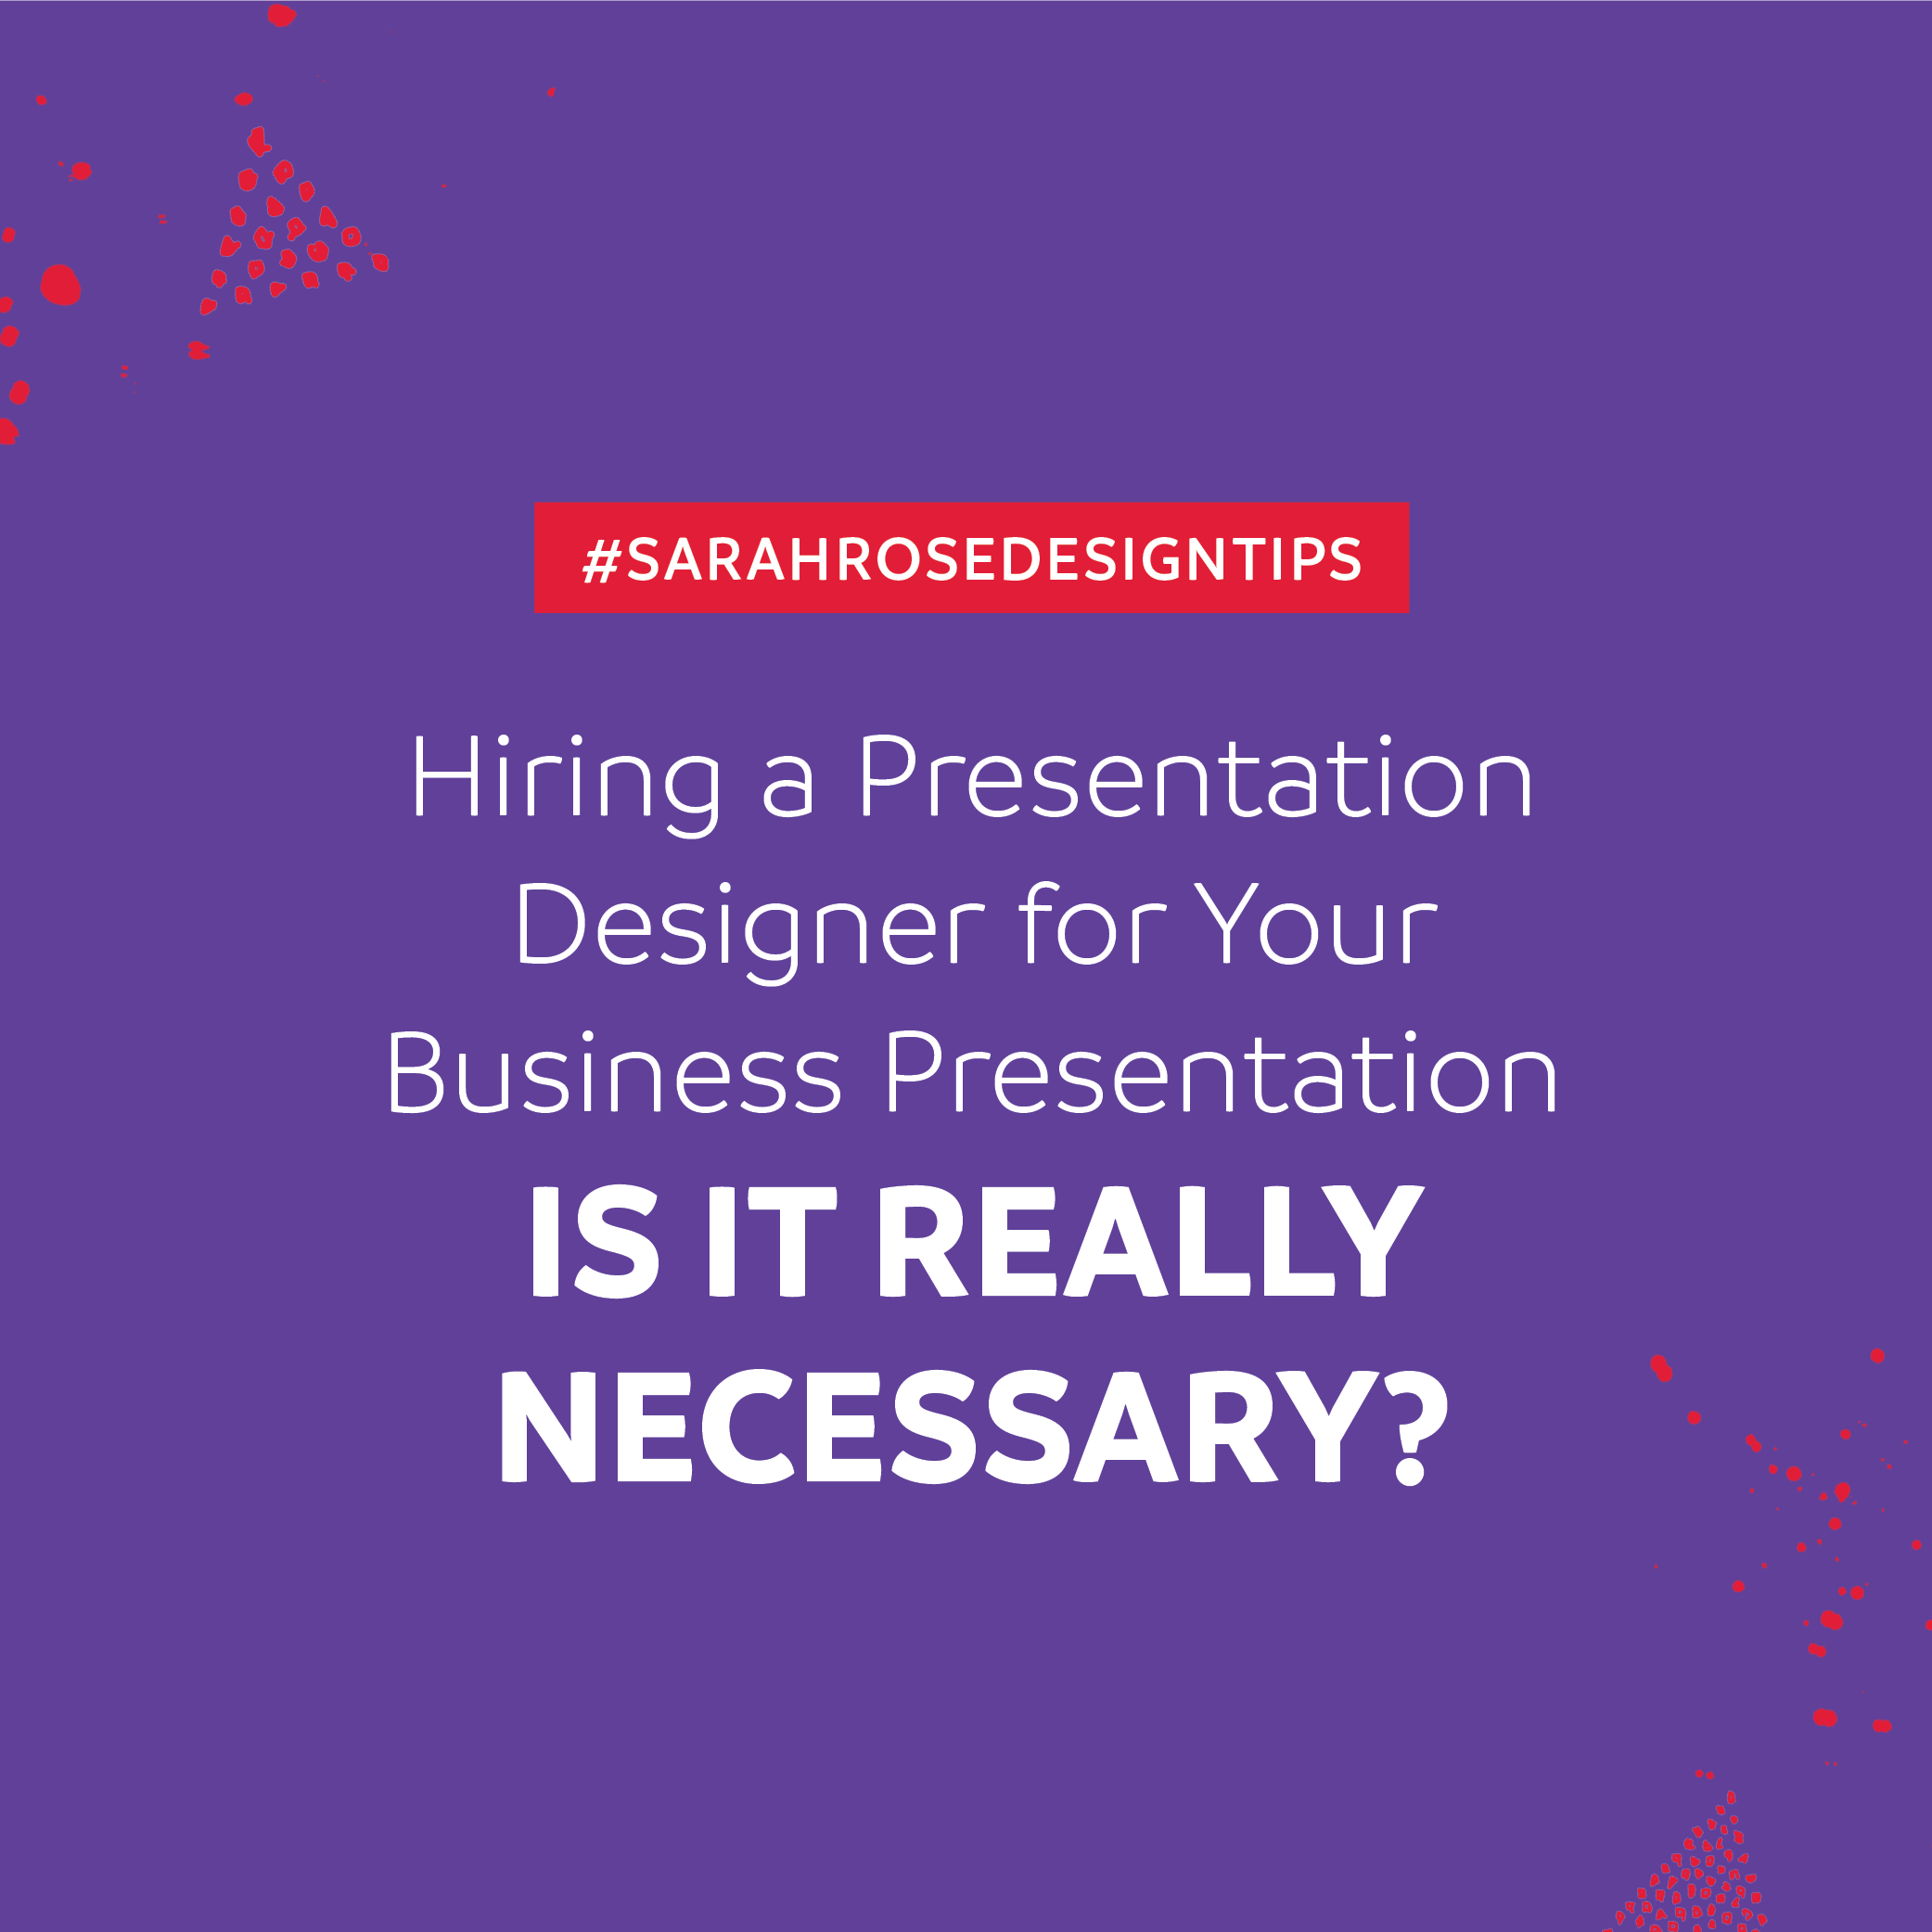 Hiring a Presentation Designer for Your Business Presentation – Is it Really Necessary?